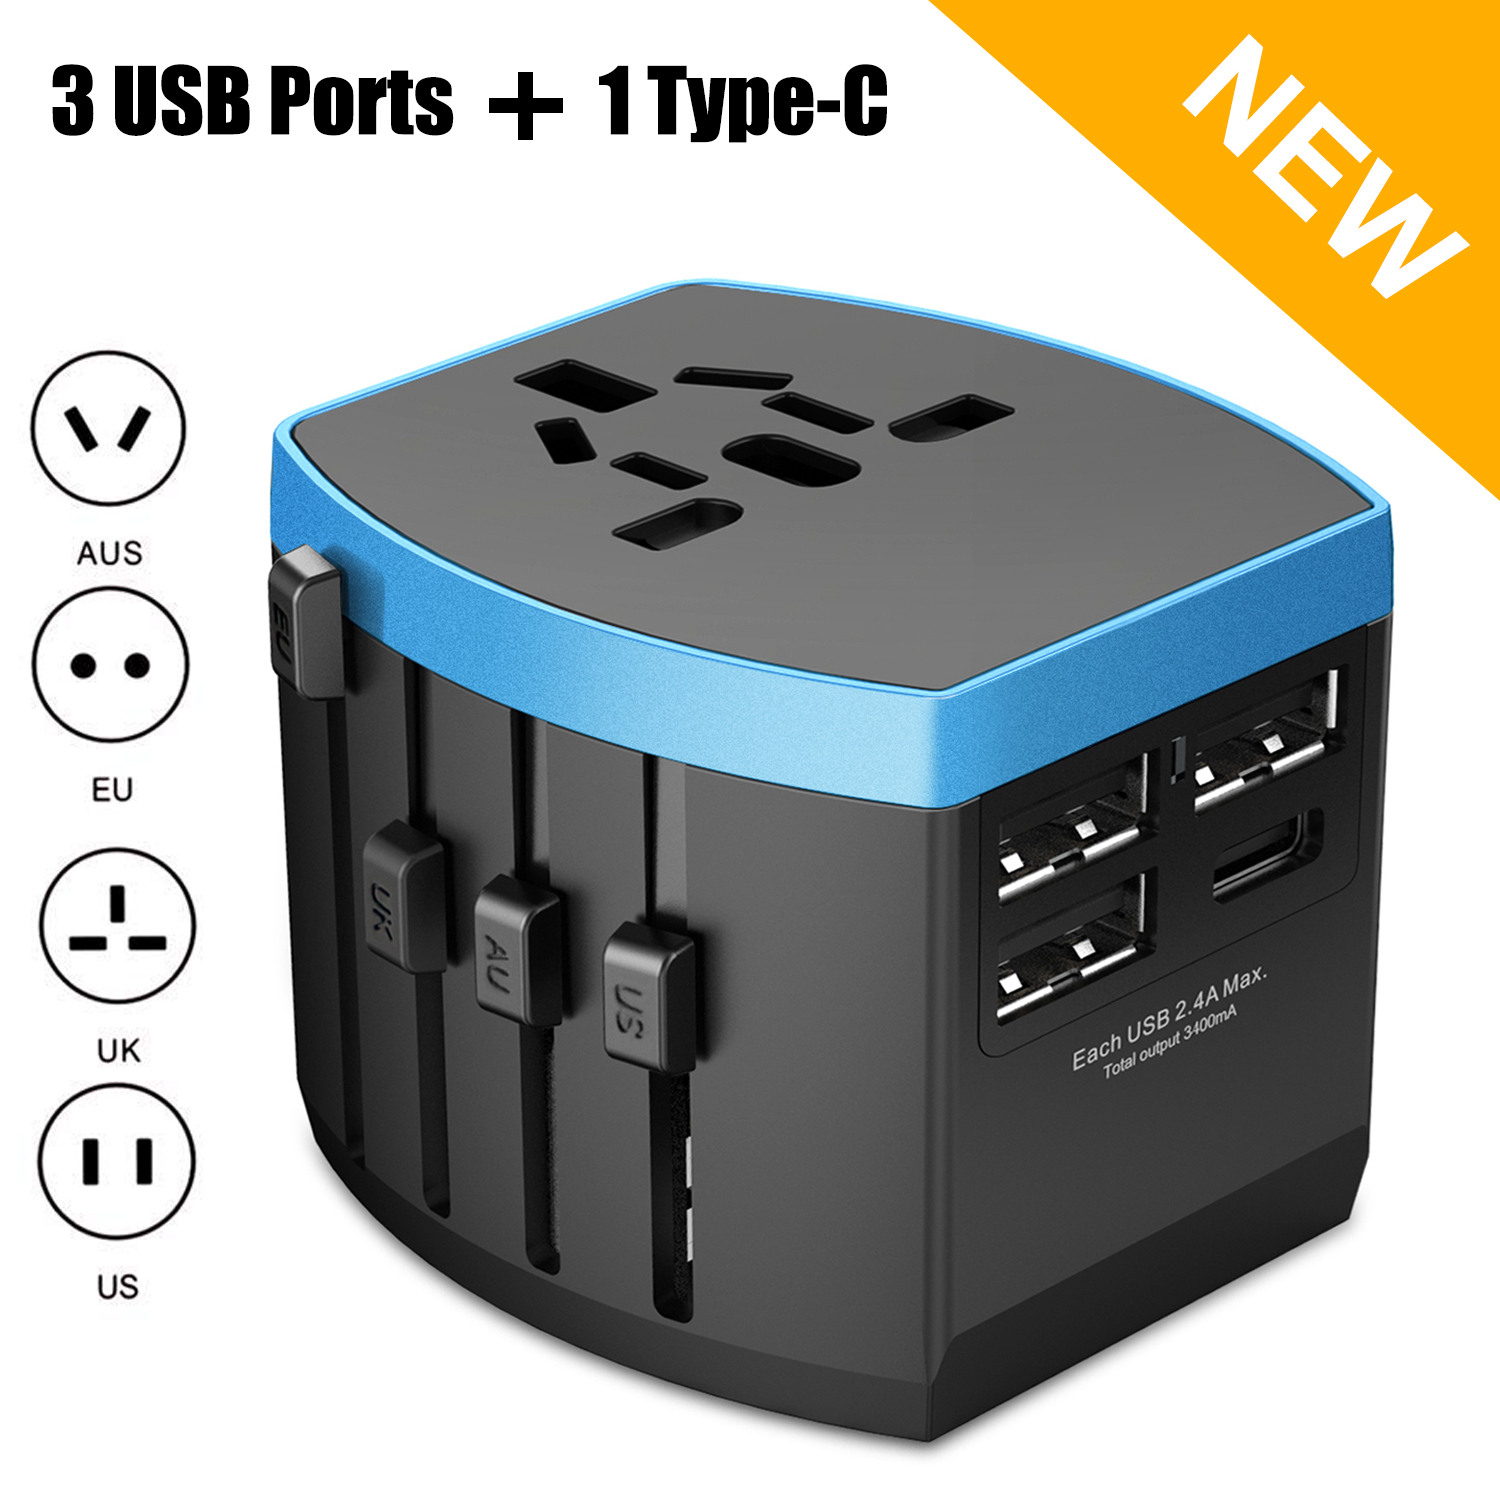 Nerdi Universal Travel Adapter, All in one International Power Adapter for US / UK / Europe / AUS Over 150 Countries Worldwide, 1 AC Outlet + 1 Type-C Port + 3 USB Ports